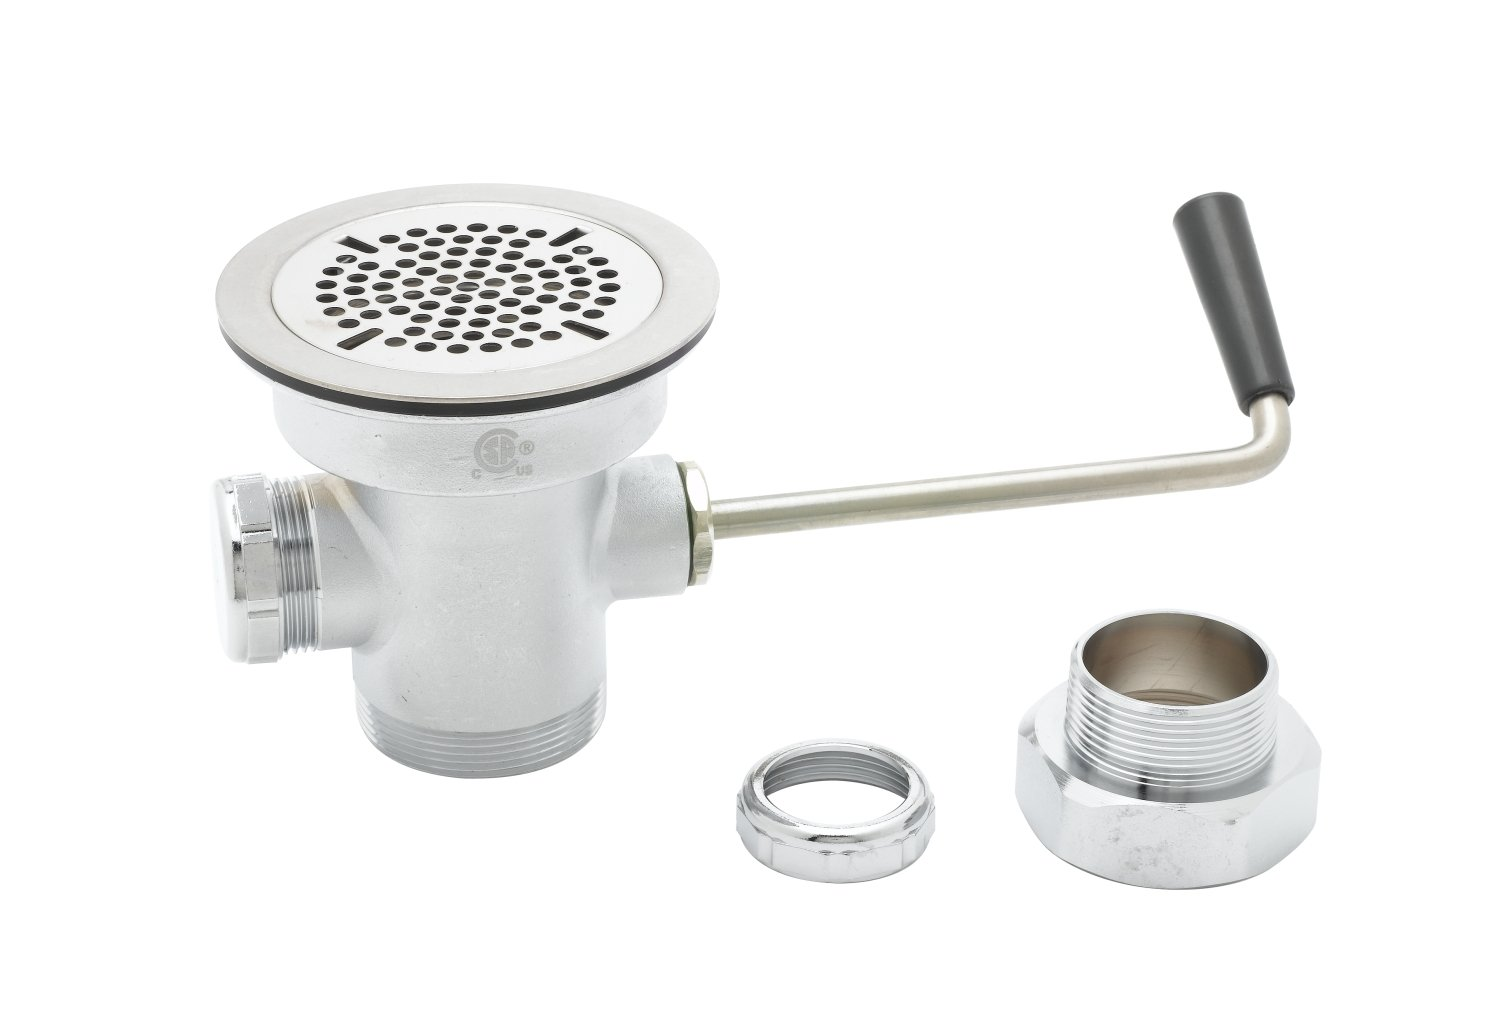 T&S Brass B-3950-XS Waste Drain Valve, Short Twist Handle, 3-1/2-Inch X 2-Inch and 1-1/2-Inch Adapter